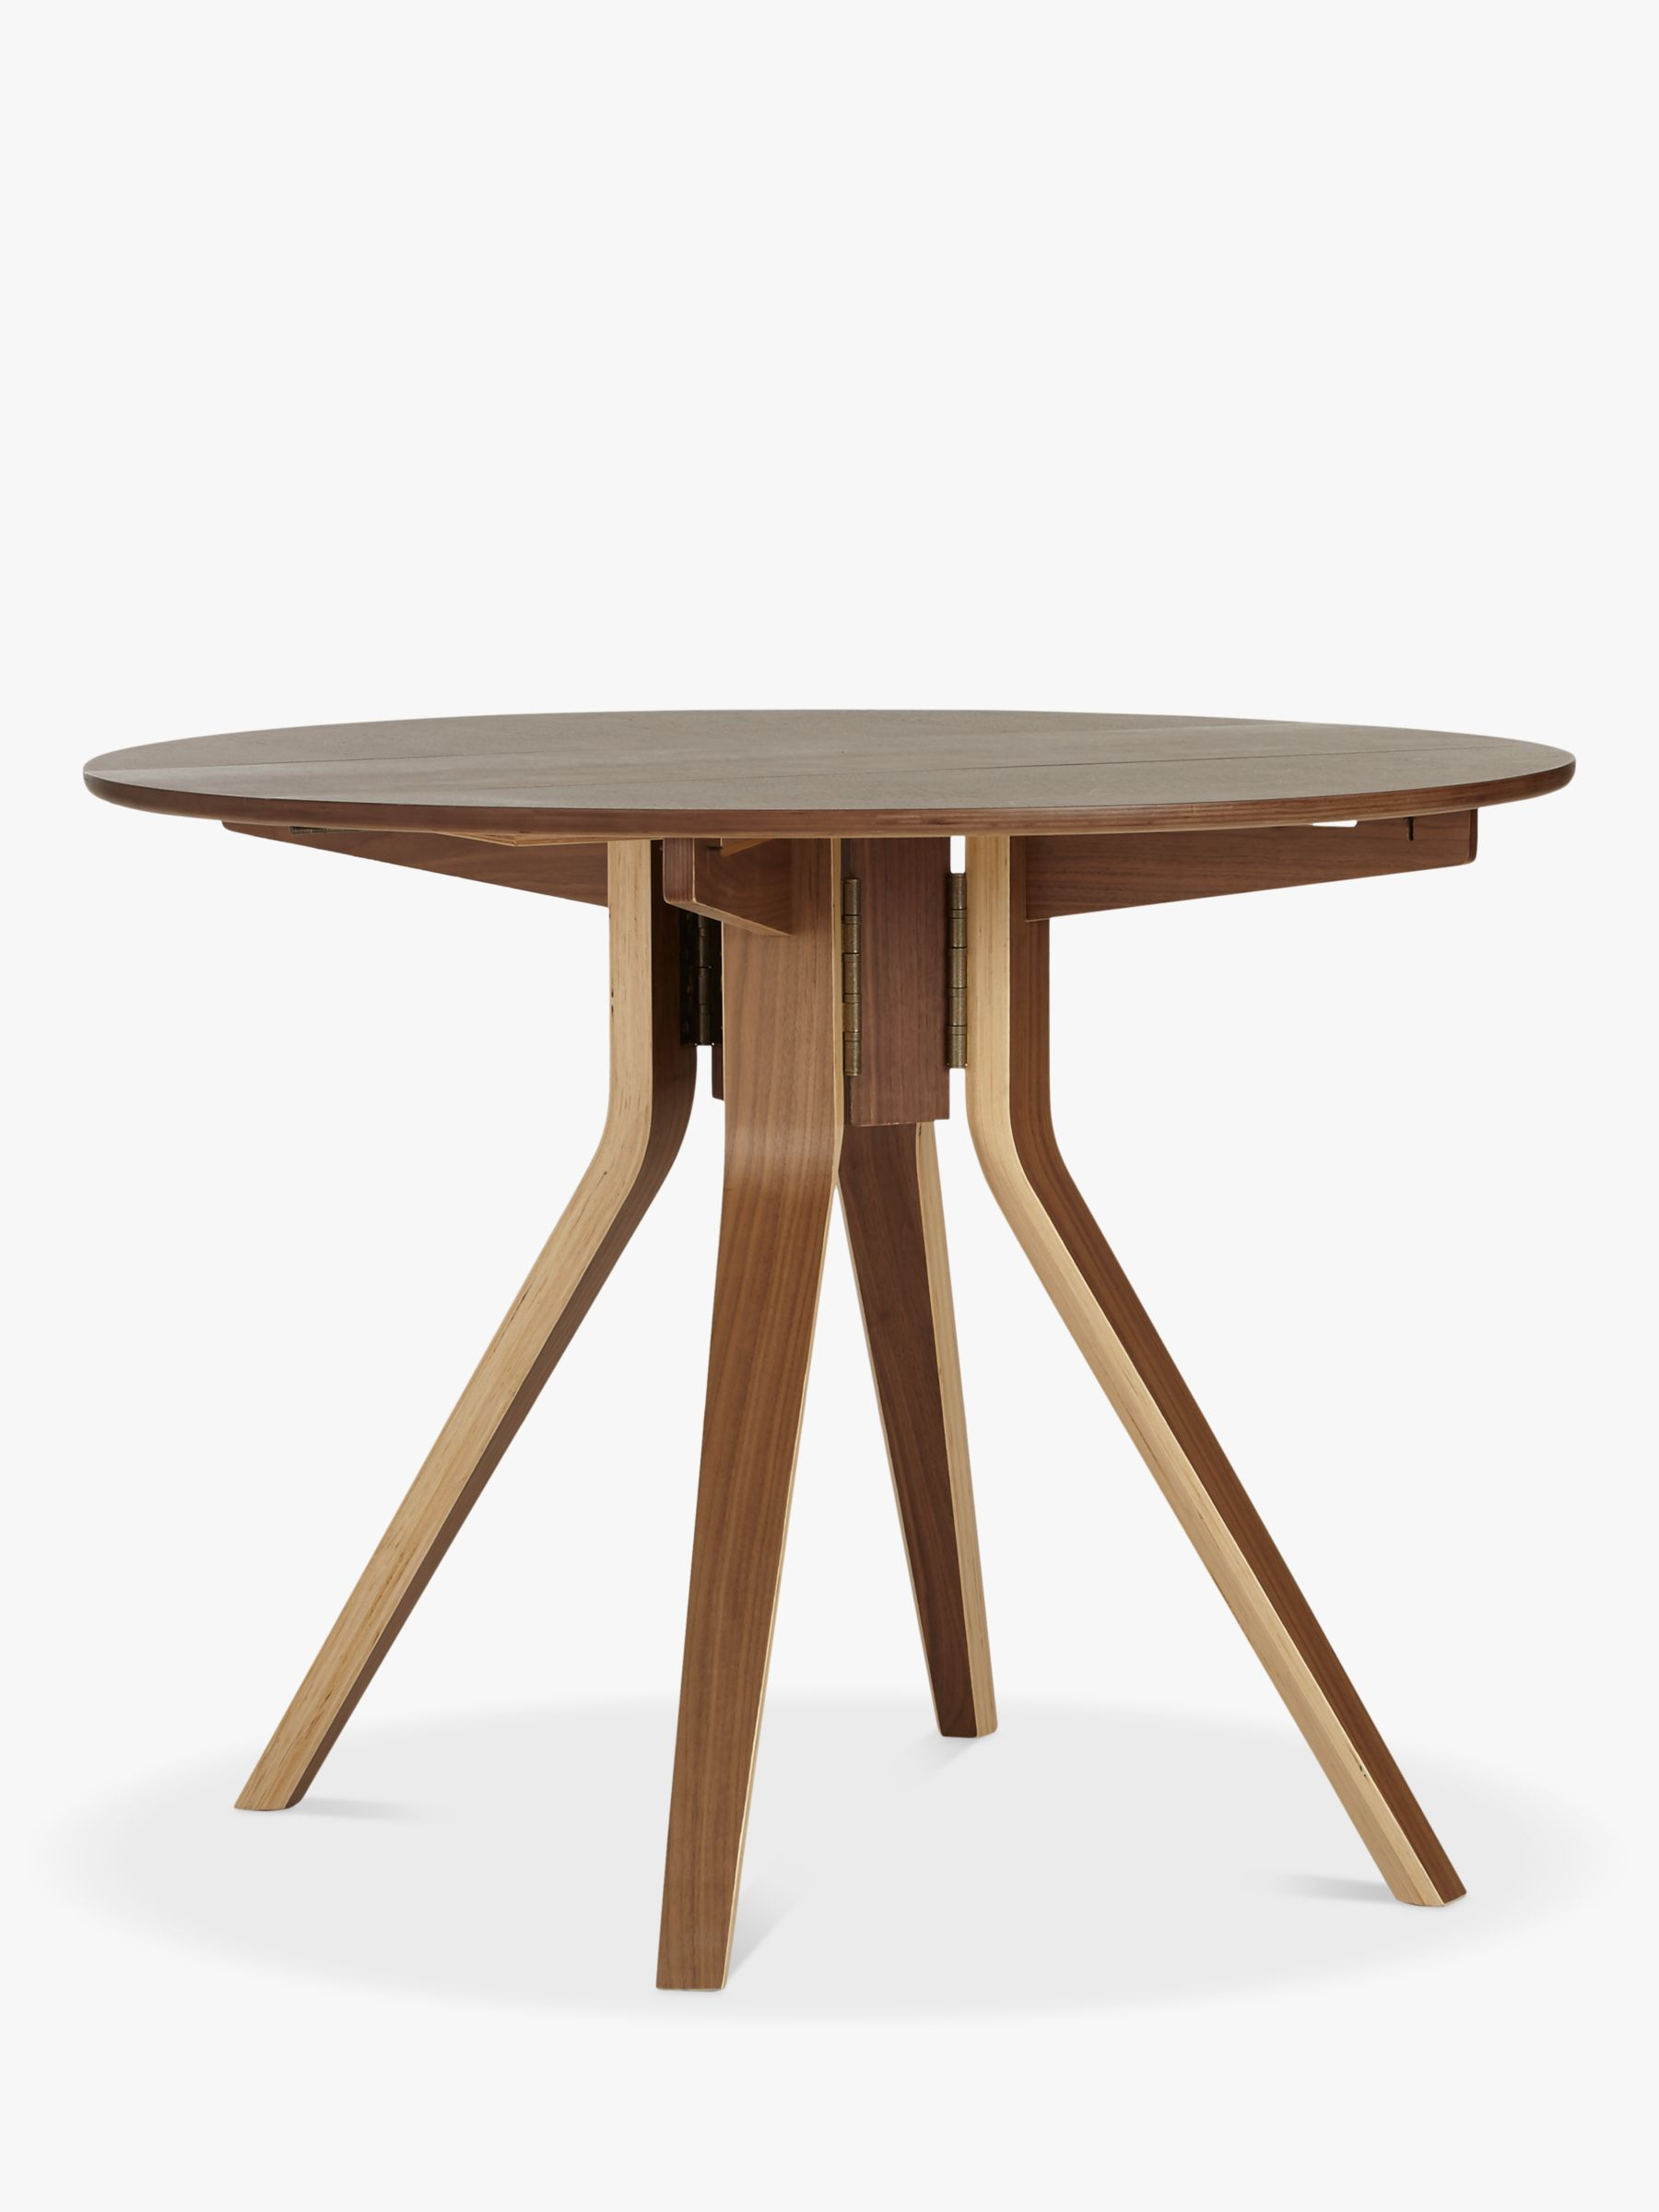 Wales & Wales for John Lewis John Lewis Radar 4-Seater Drop-Leaf Dining Table, Walnut